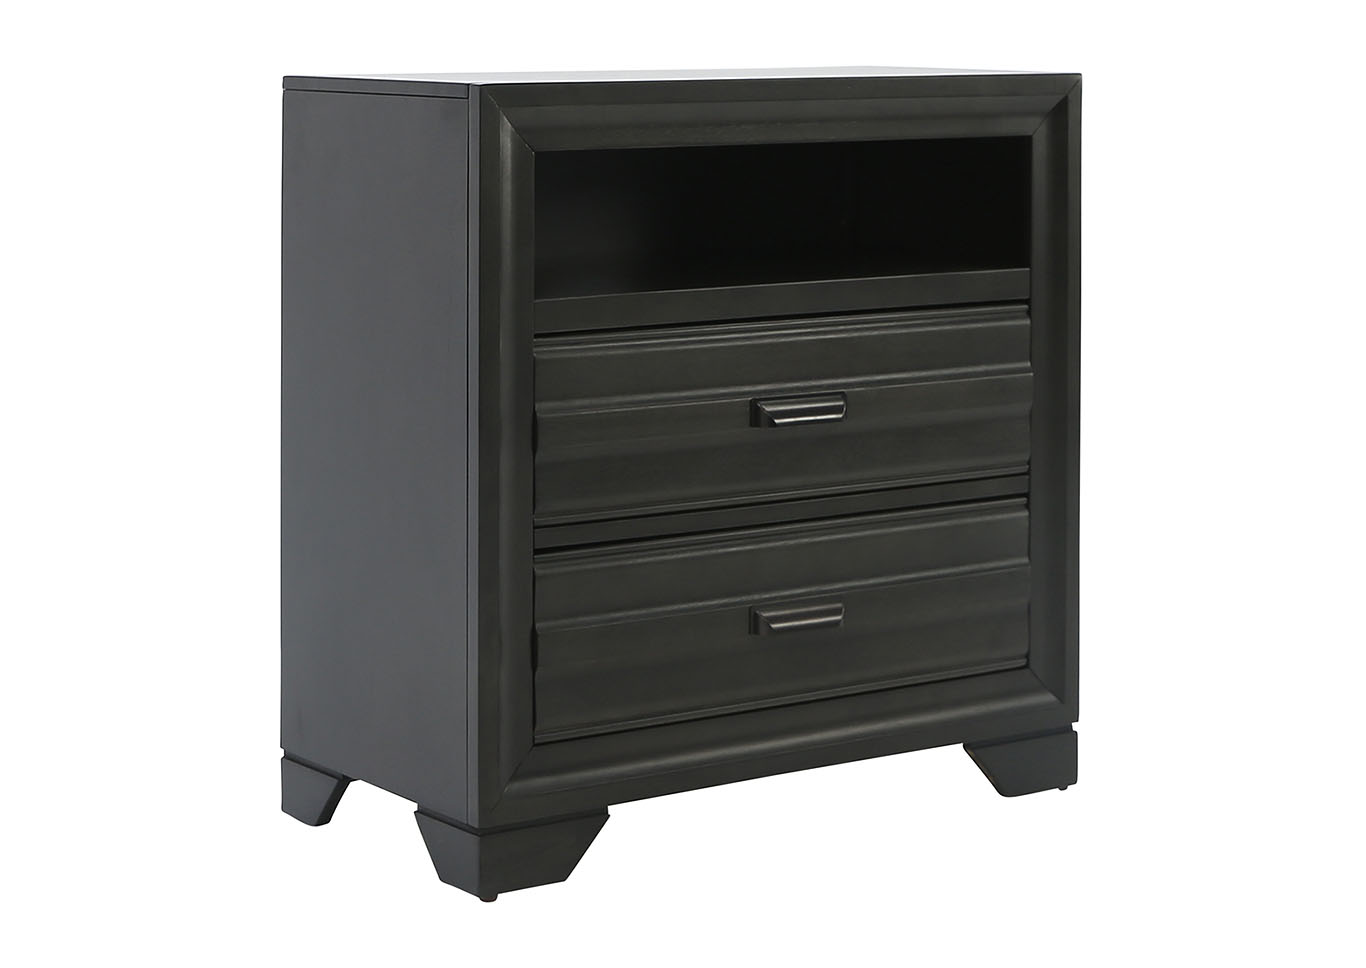 ASLINN ANTIQUE GREY MEDIA CHEST,LIFESTYLE FURNITURE